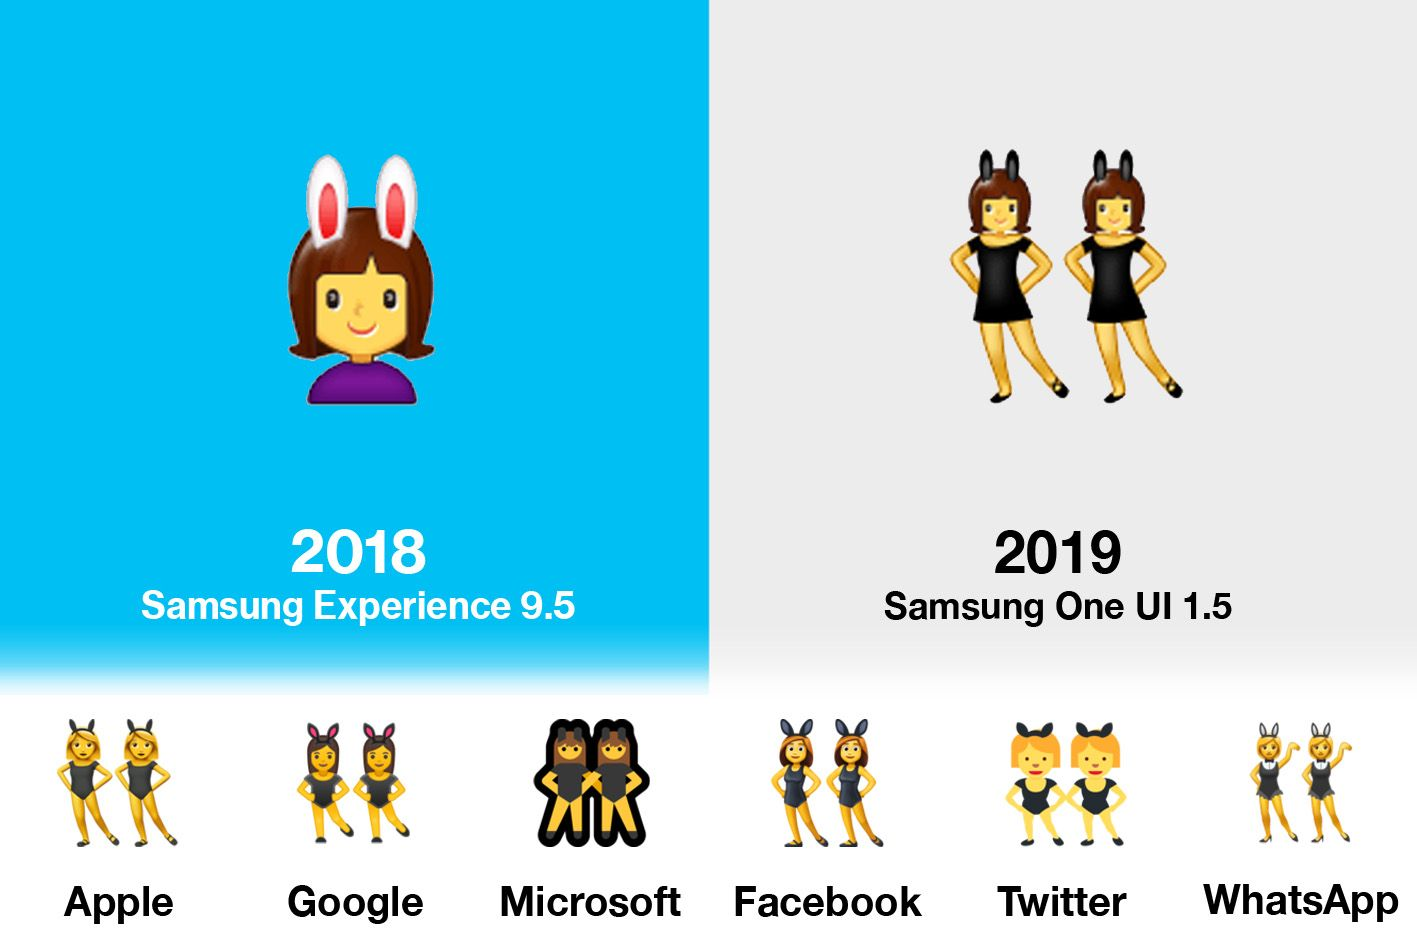 Emojipedia-End-Of-Year-Comparison-Image-Woman-With-Bunny-Ears-1